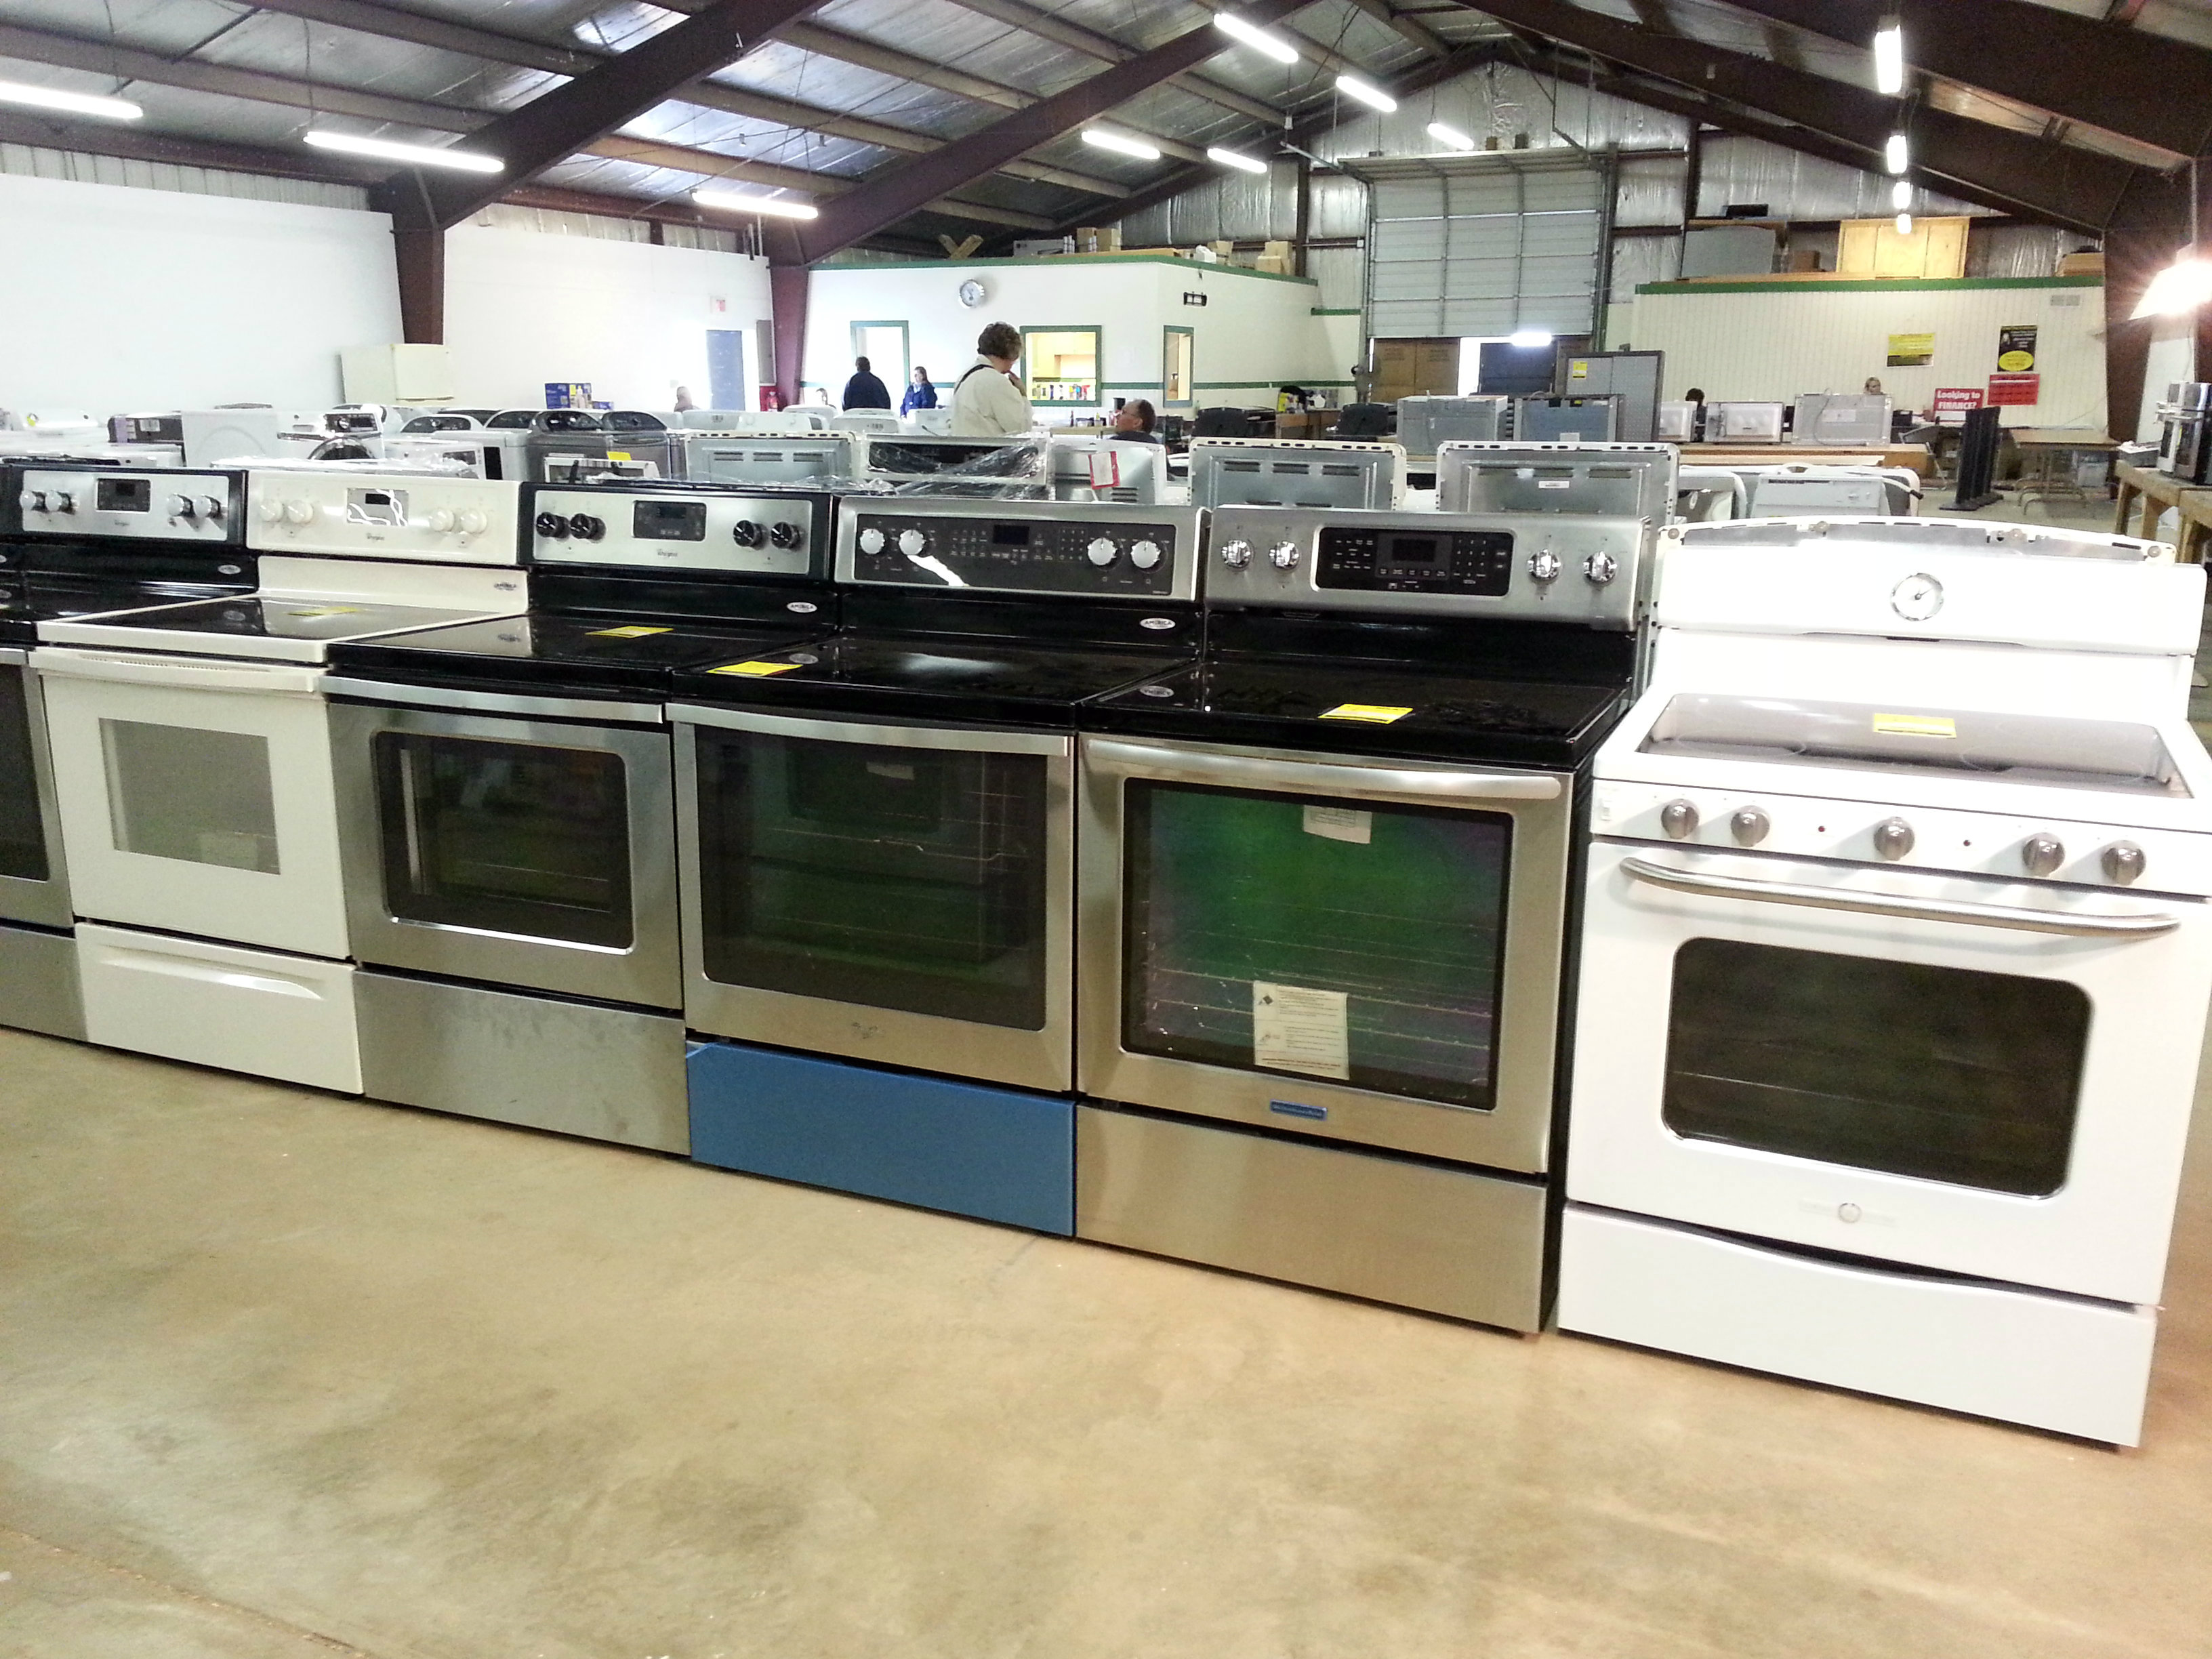 Ovens Stoves Cooktops at Silica Appliance Liquidation Sale